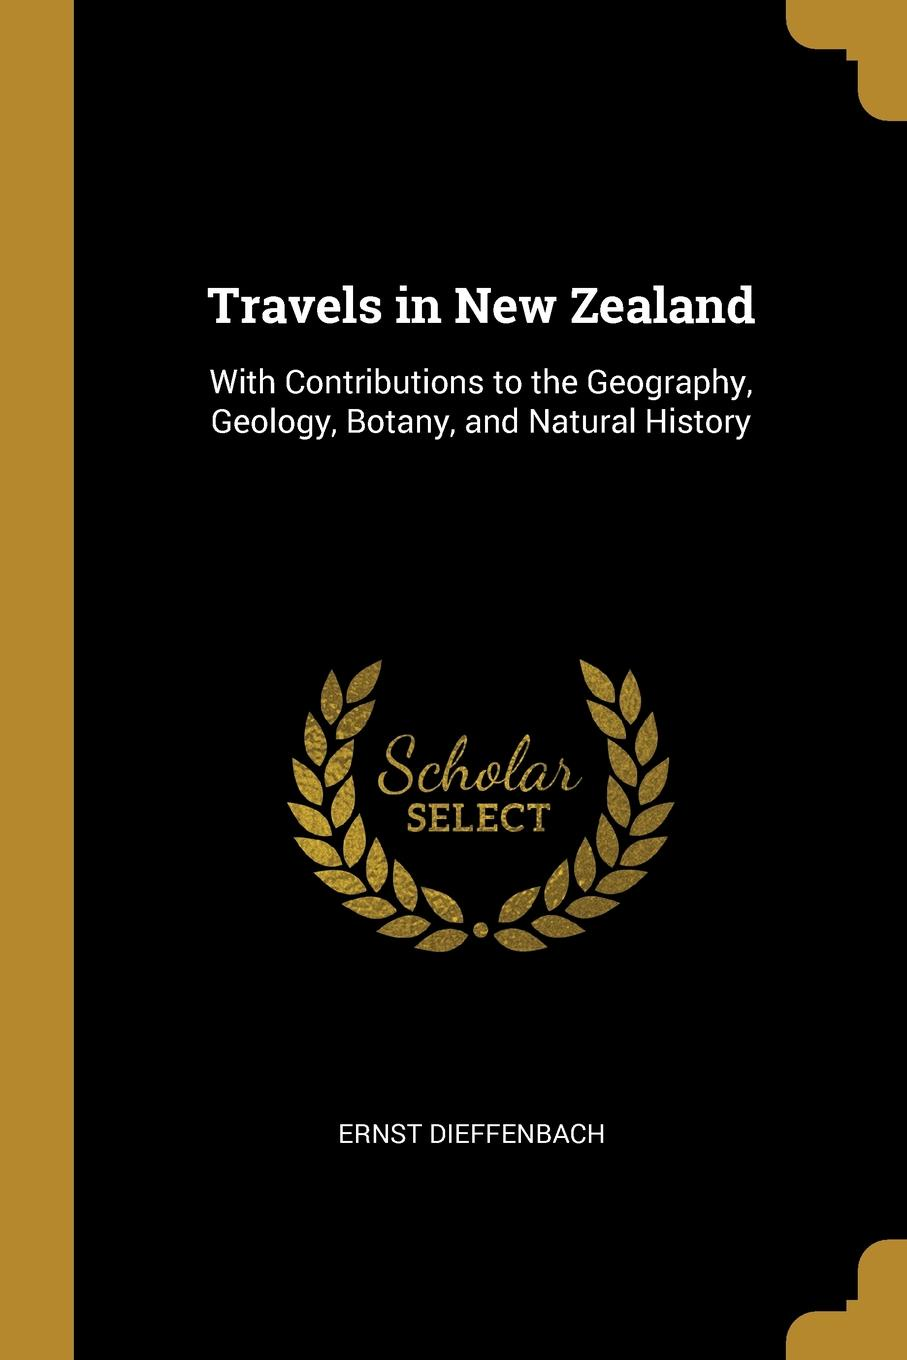 Ernst Dieffenbach Travels in New Zealand. With Contributions to the Geography, Geology, Botany, and Natural History